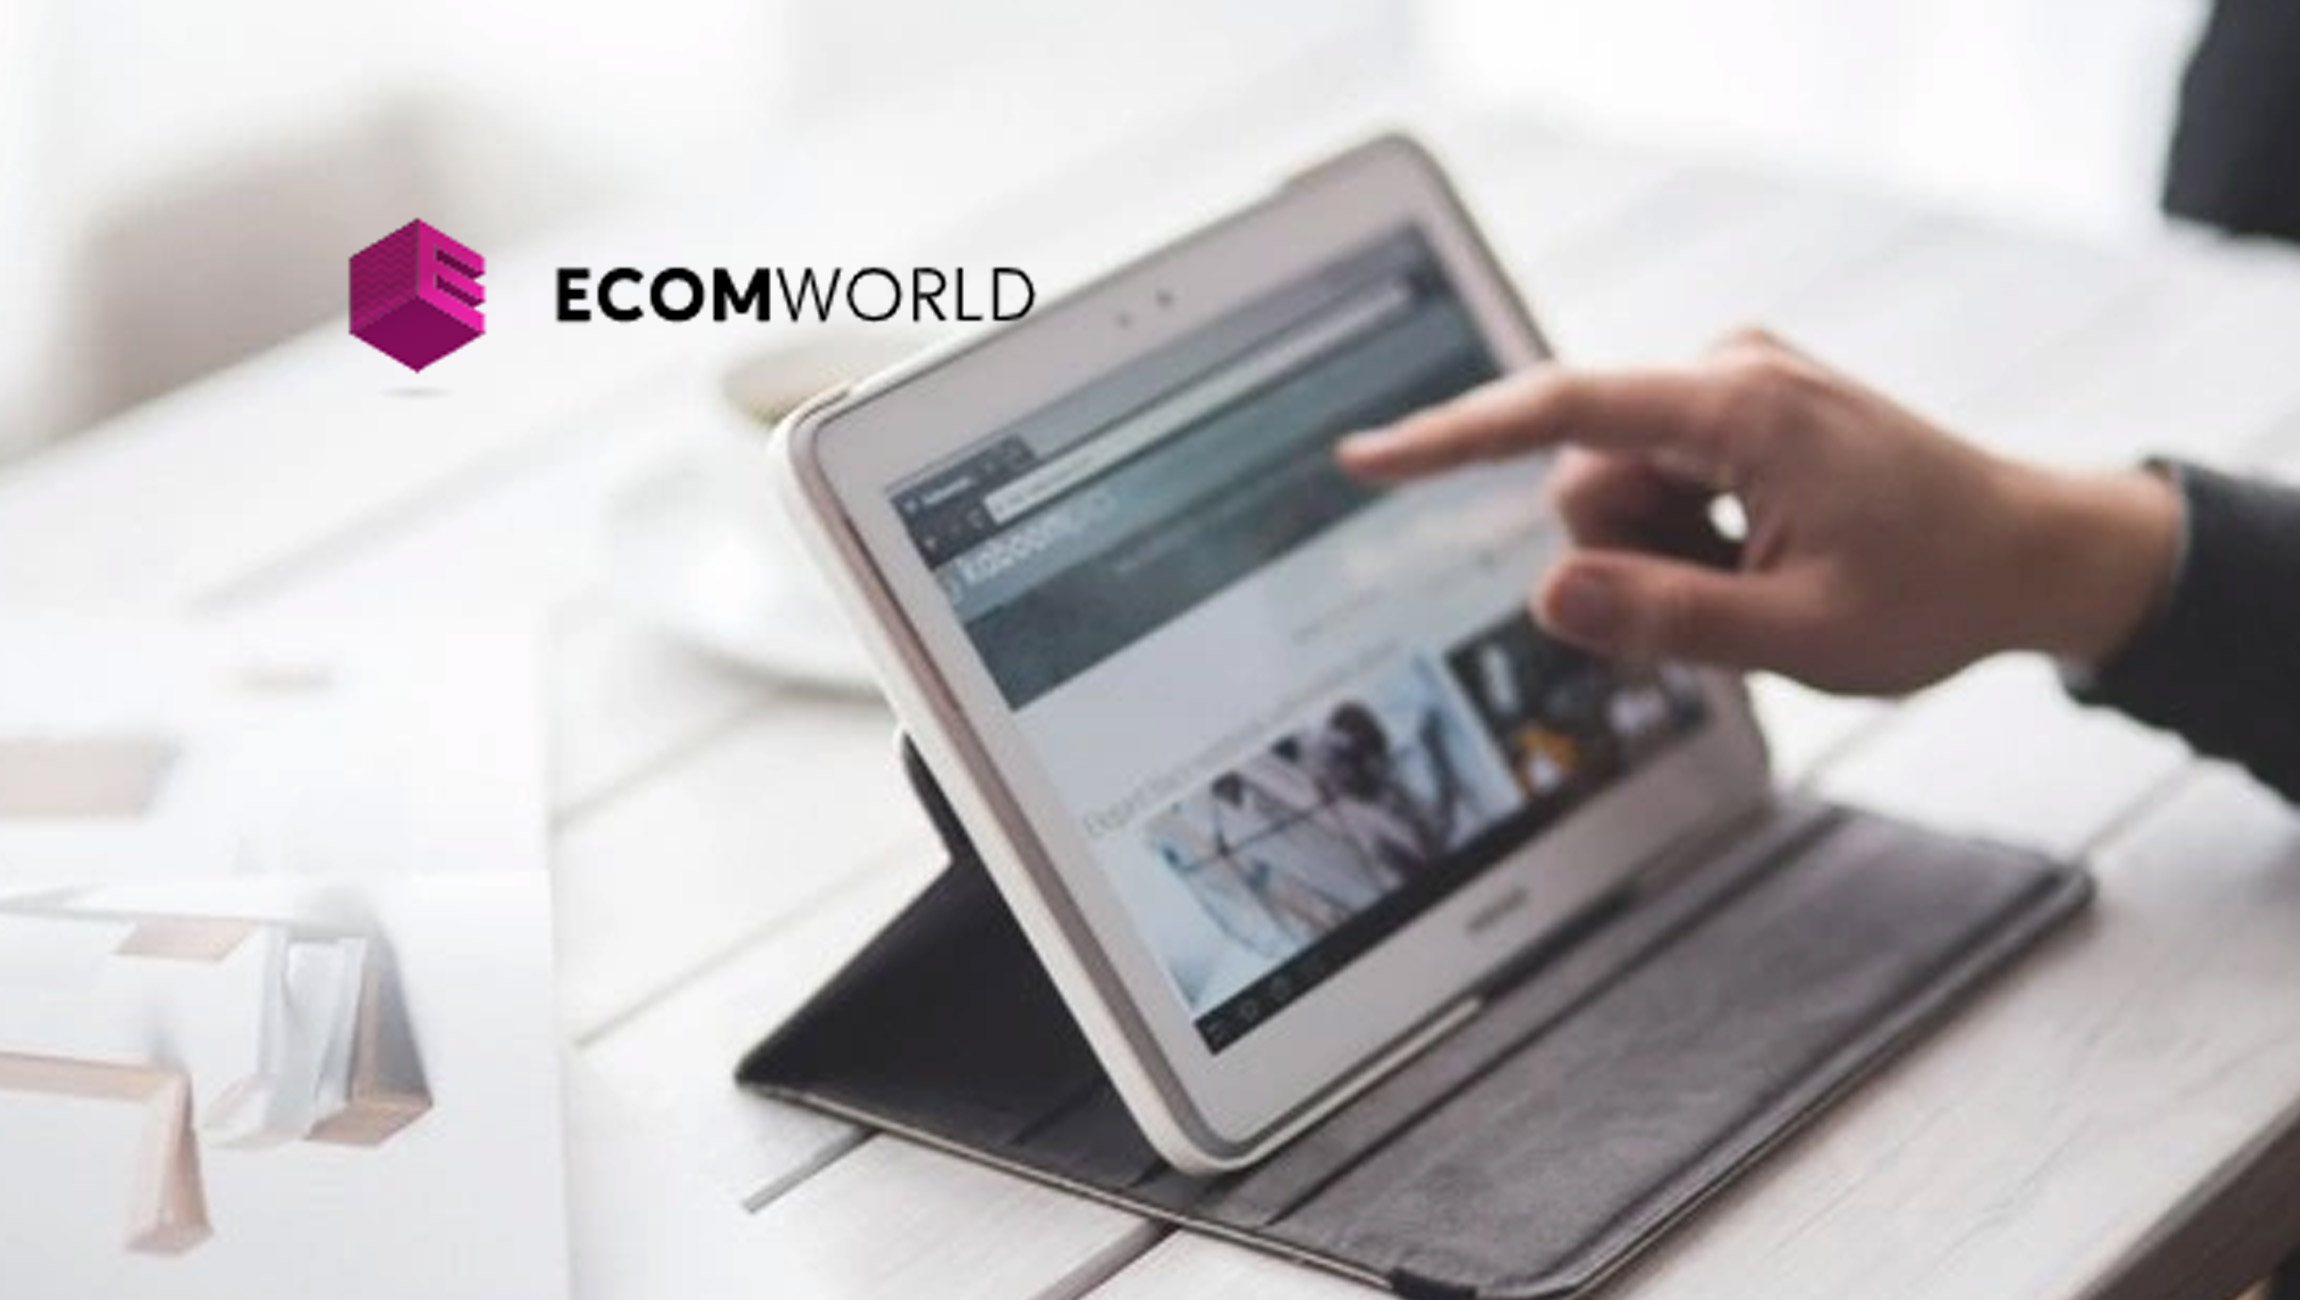 Ecom-World-Conference-The-World's-Largest-Online-Event-for-the-Ecommerce-Industry